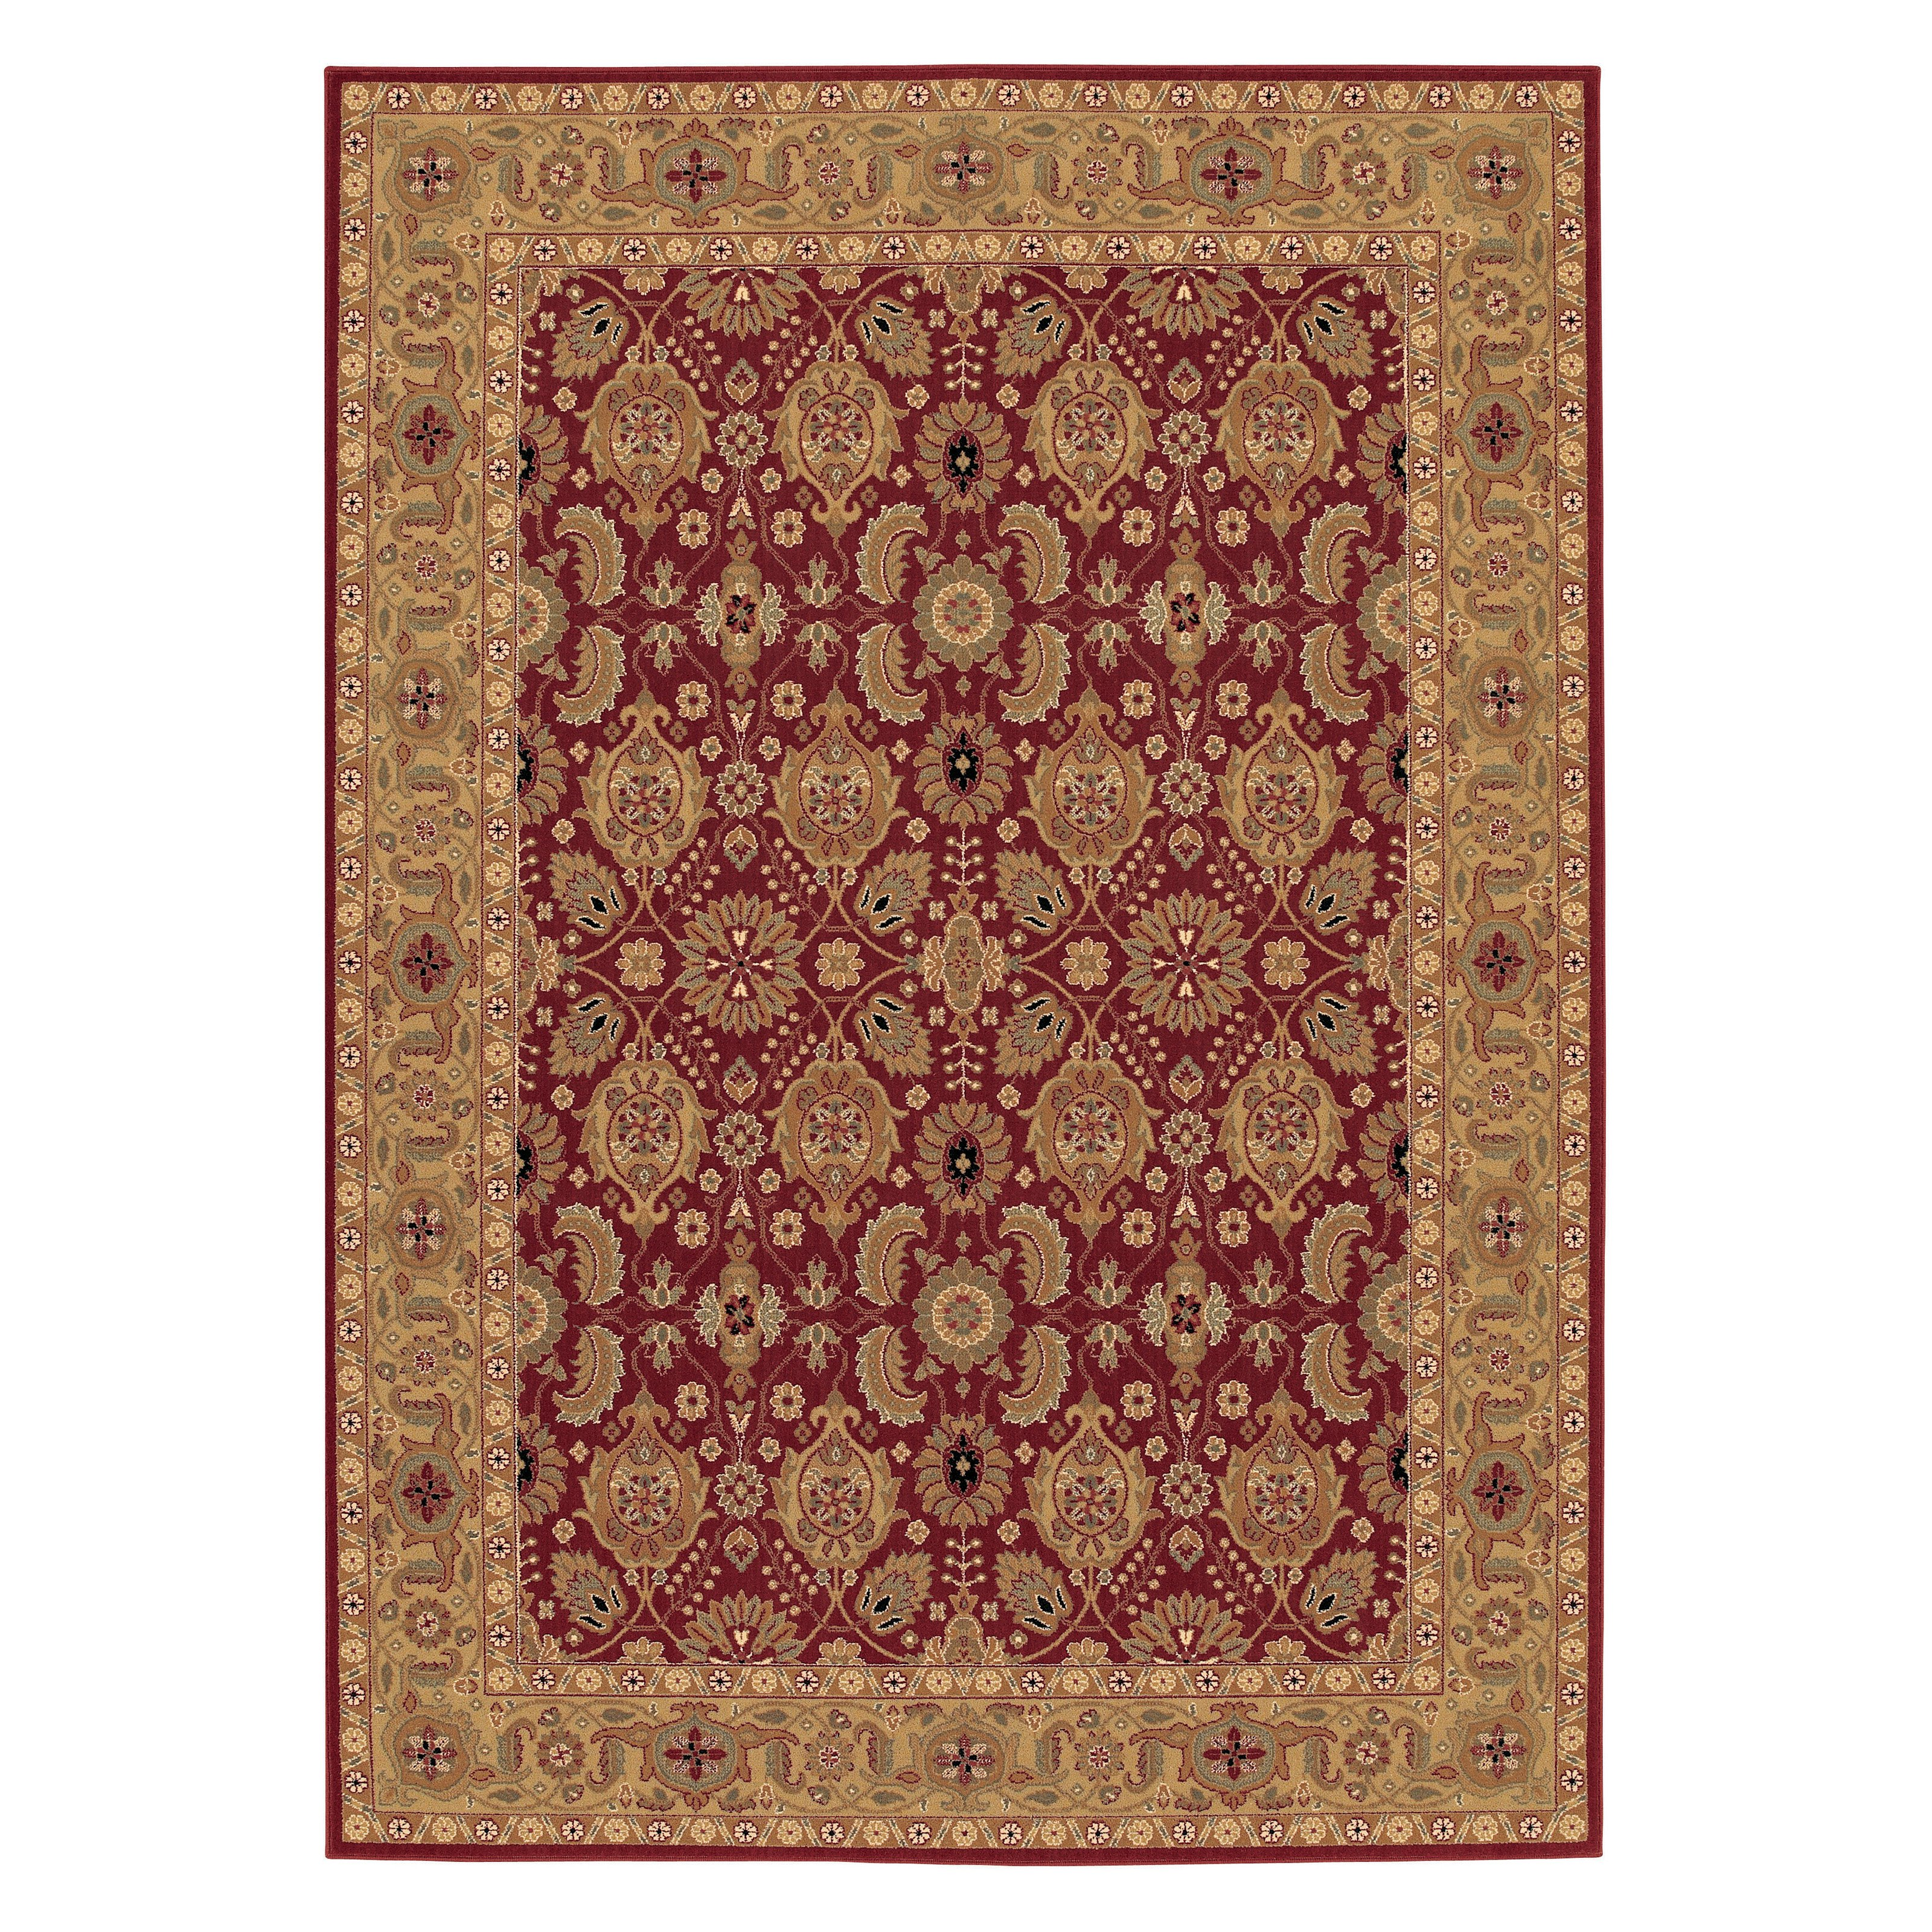 Couristan Royal Kashimar 8132/2608 All Over Vase Area Rug - Persian Red